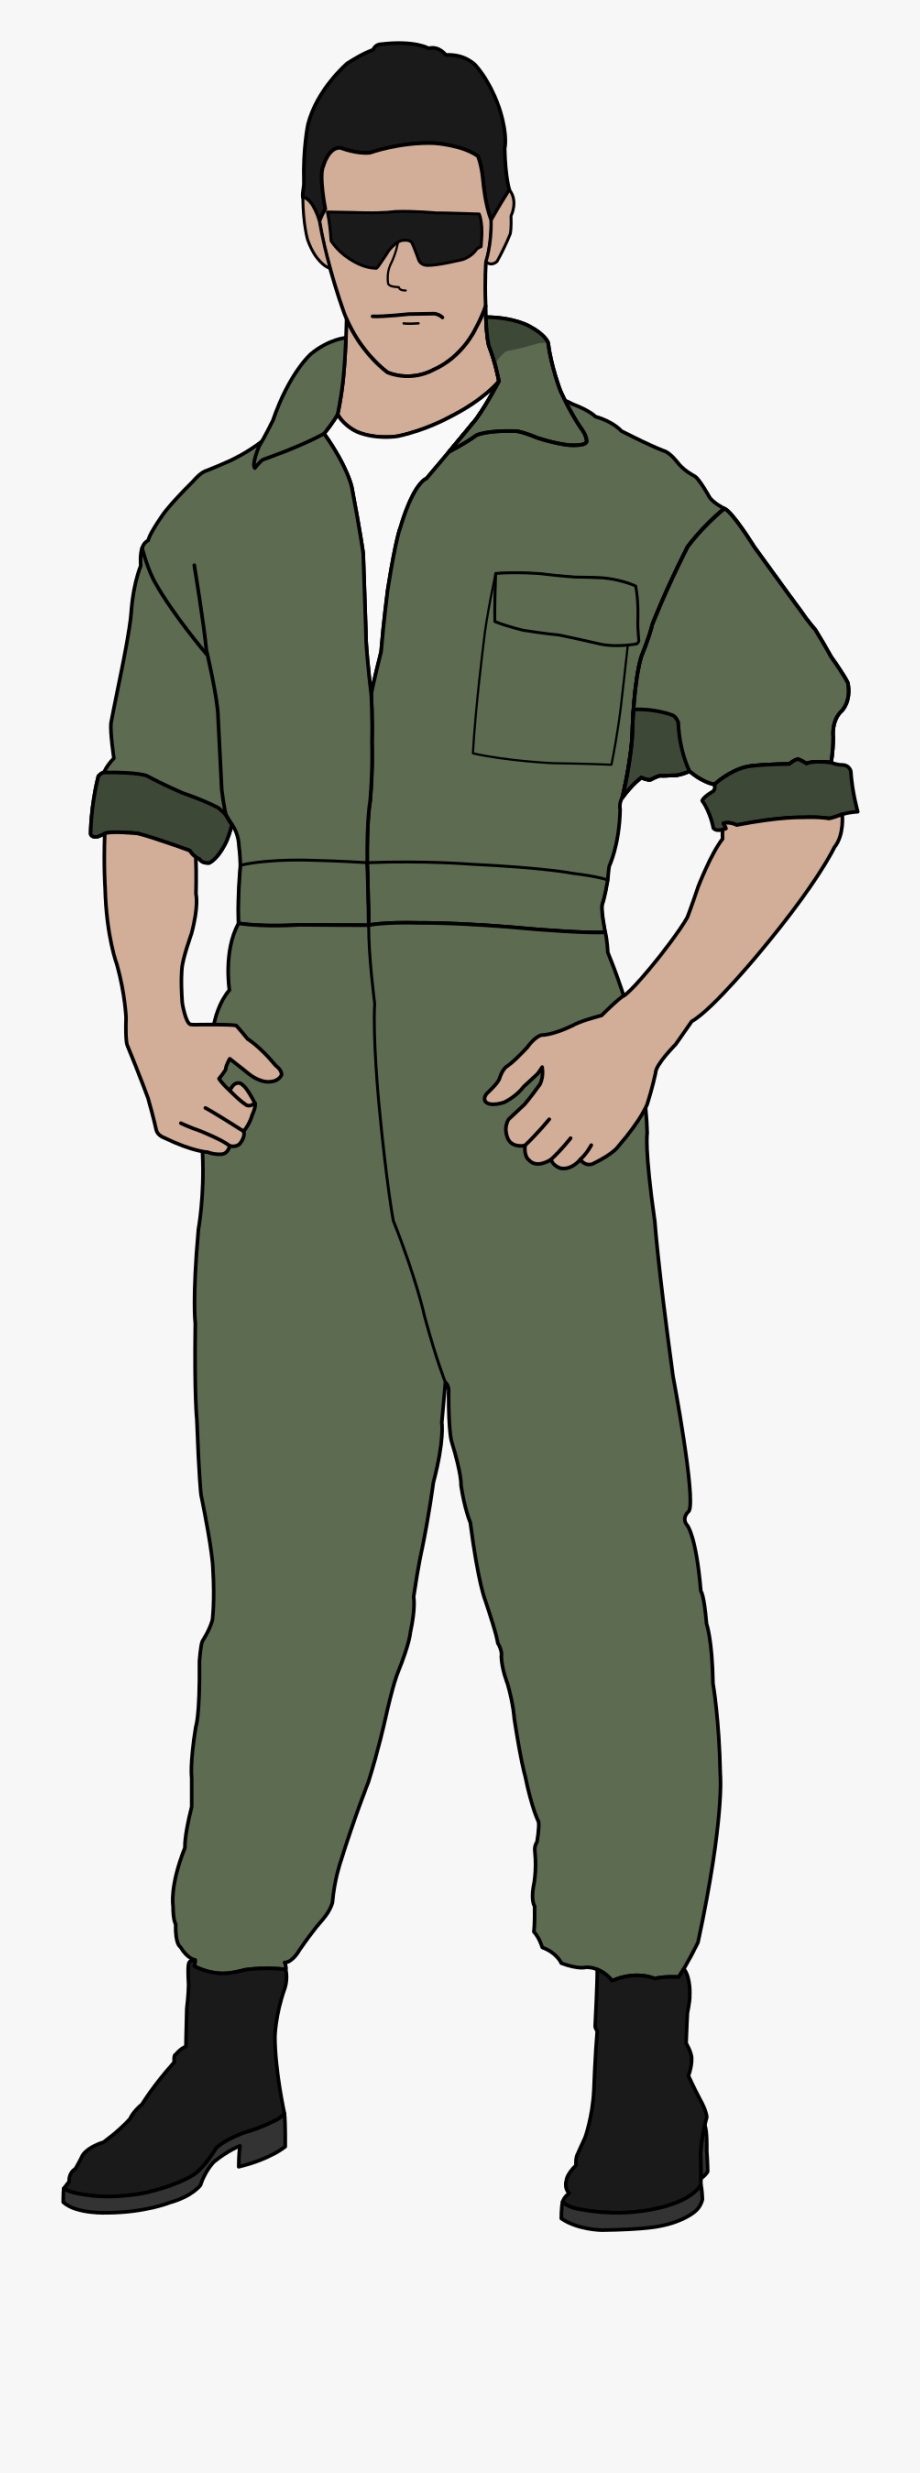 Vintage Military Pilot Wings Clipart No Background.